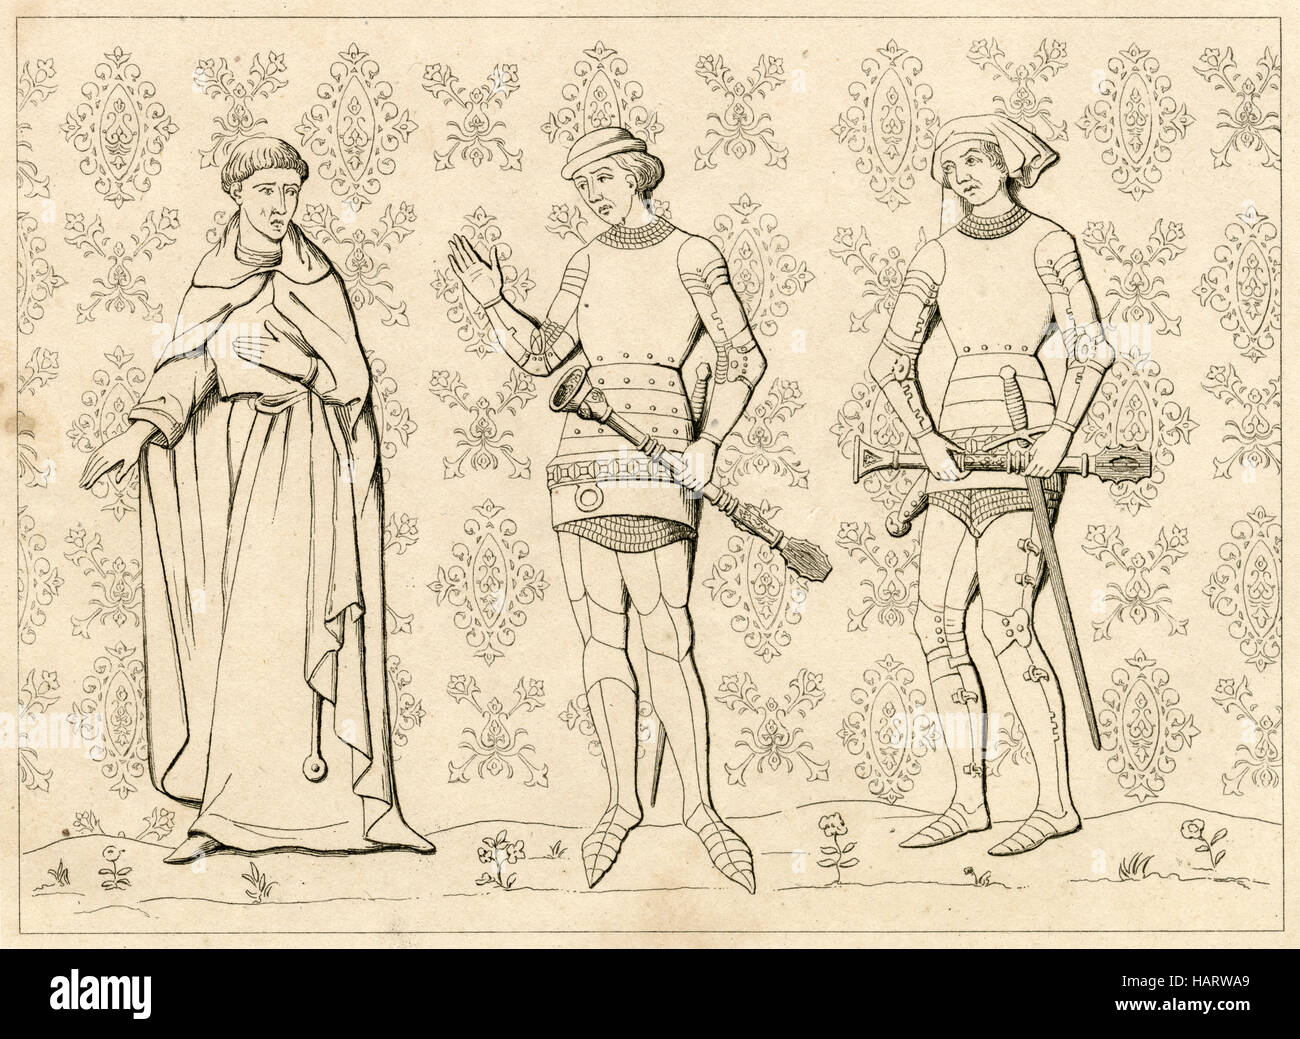 Antique engraving, circa 1860, depicting the 13th century uniforms of a French Religious man and Sergeant at Arms. - Stock Image